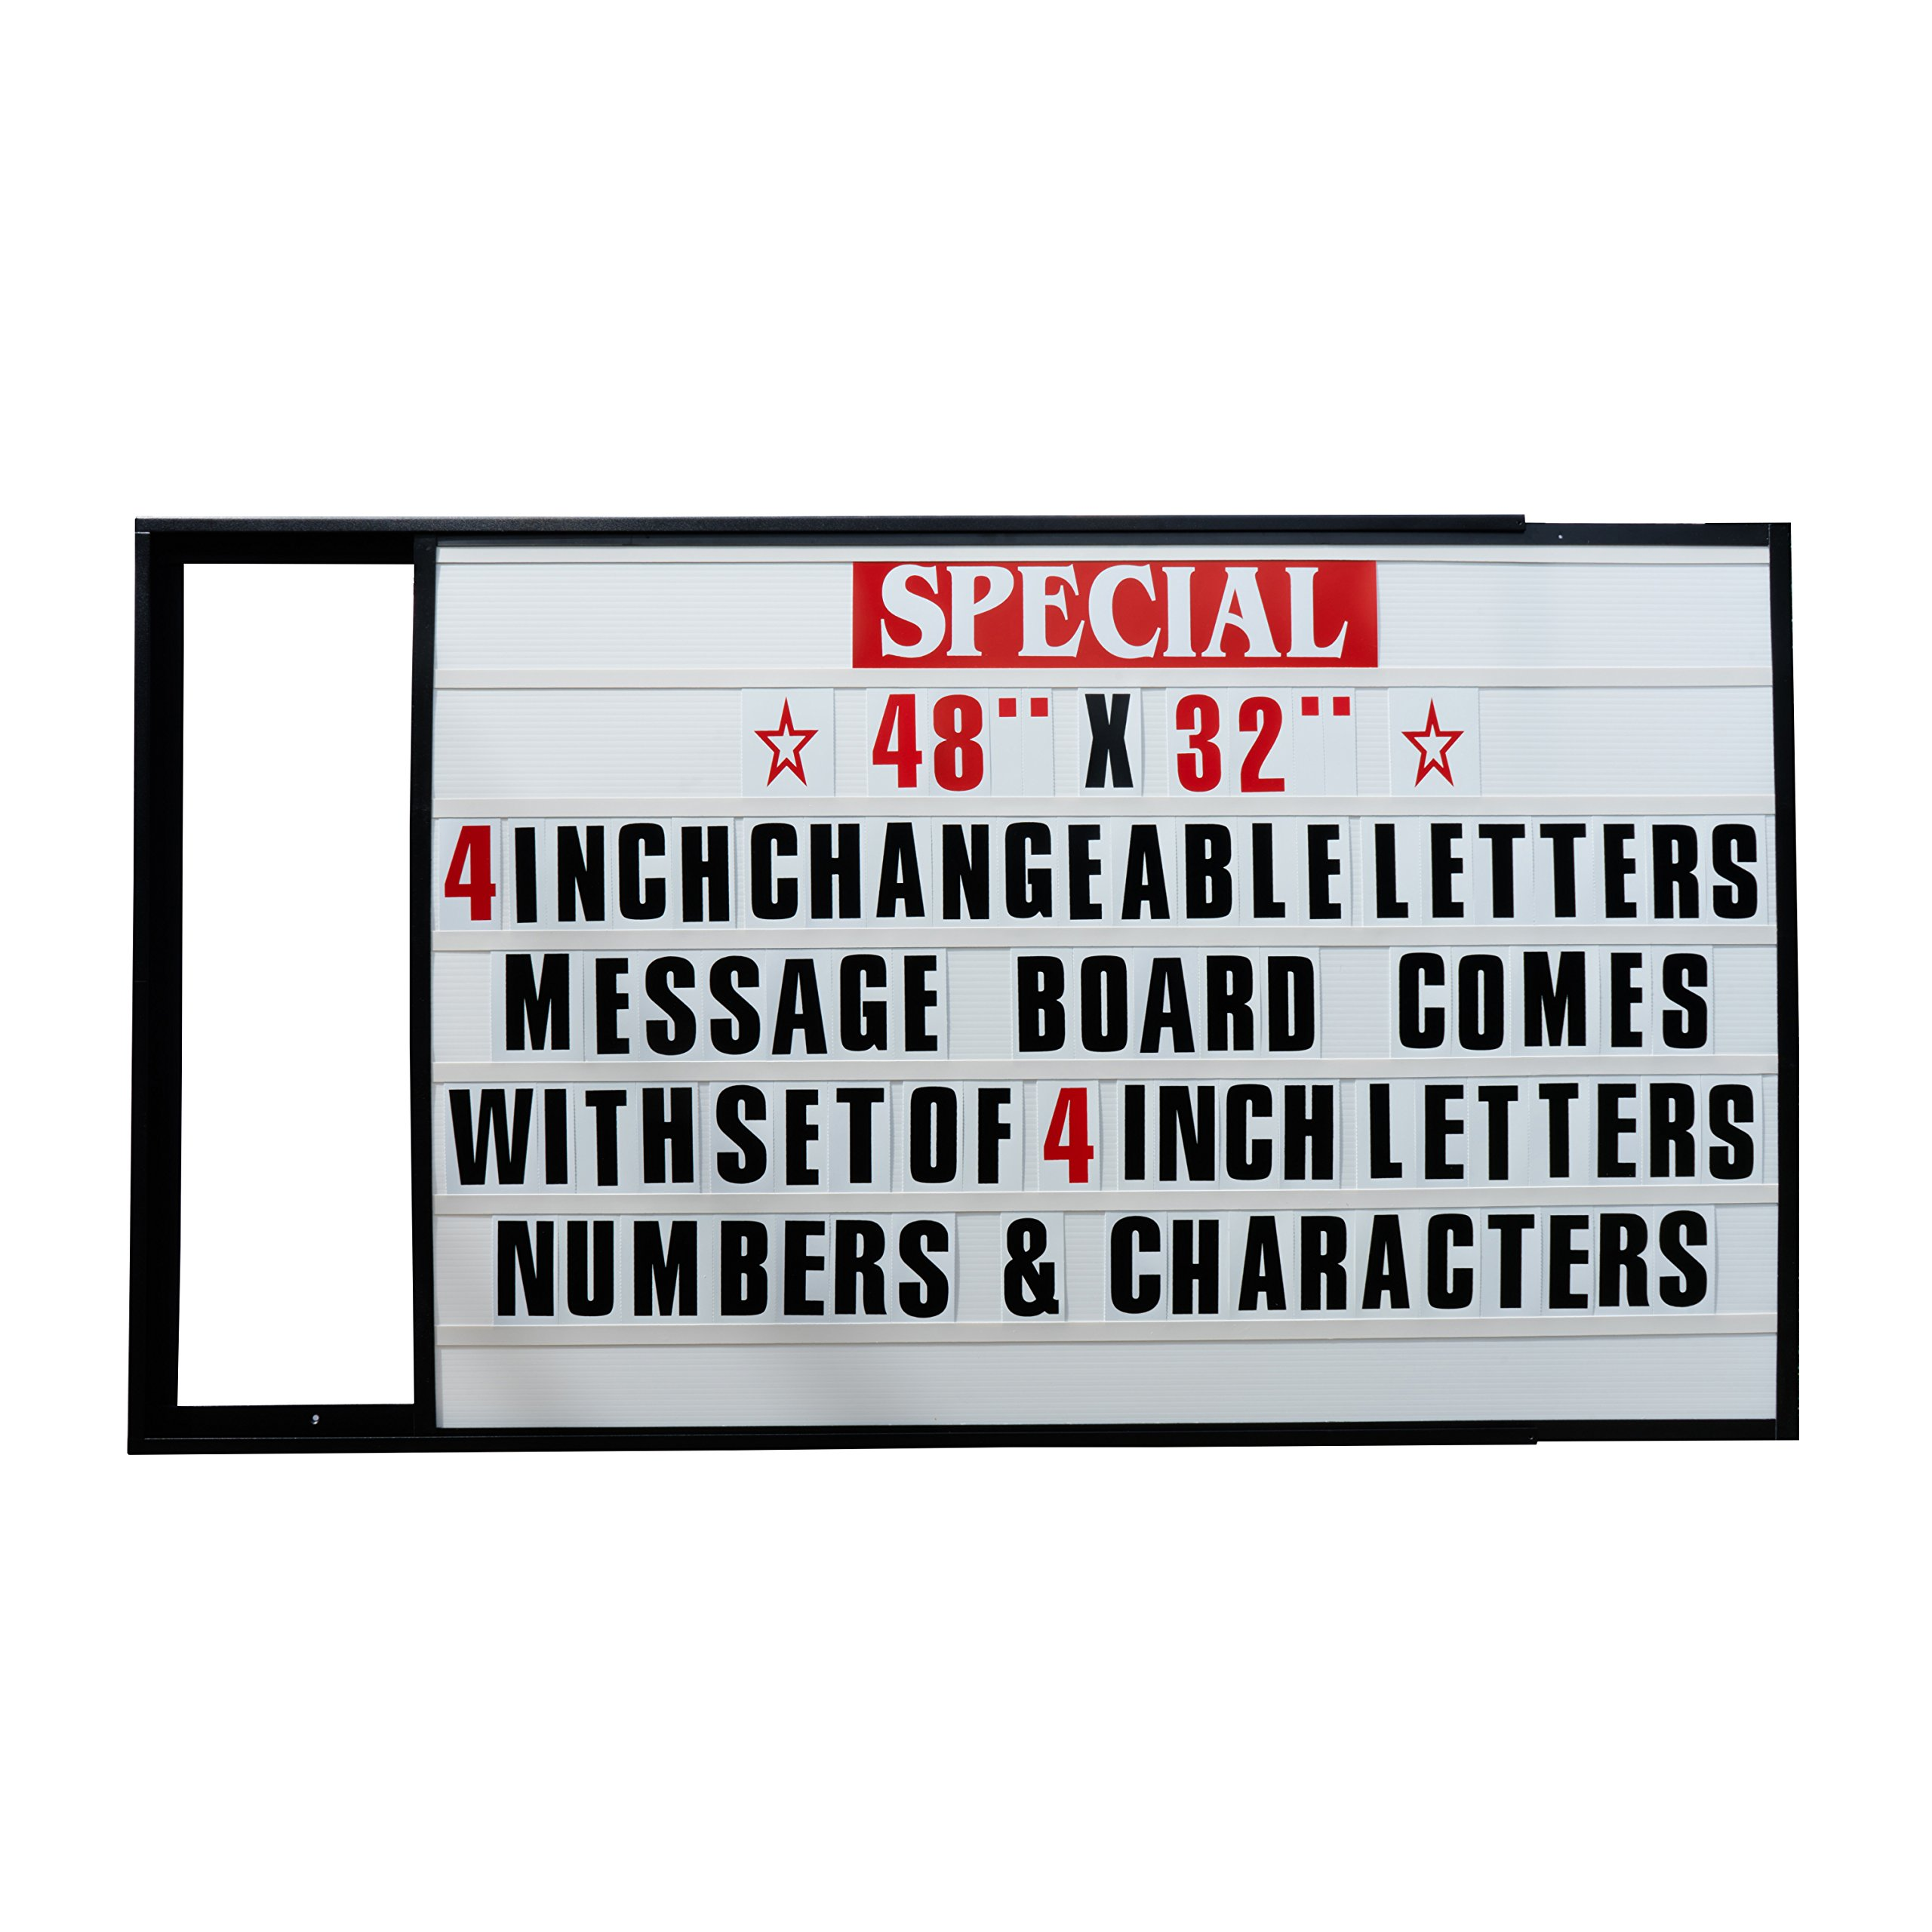 48''x32'' Outdoor Changeable Letter Message Board Marquee Sign with Metal Frame - Clear Acrylic Protection Cover and 4 Inch Letters Set! by Mysignboards (Image #2)